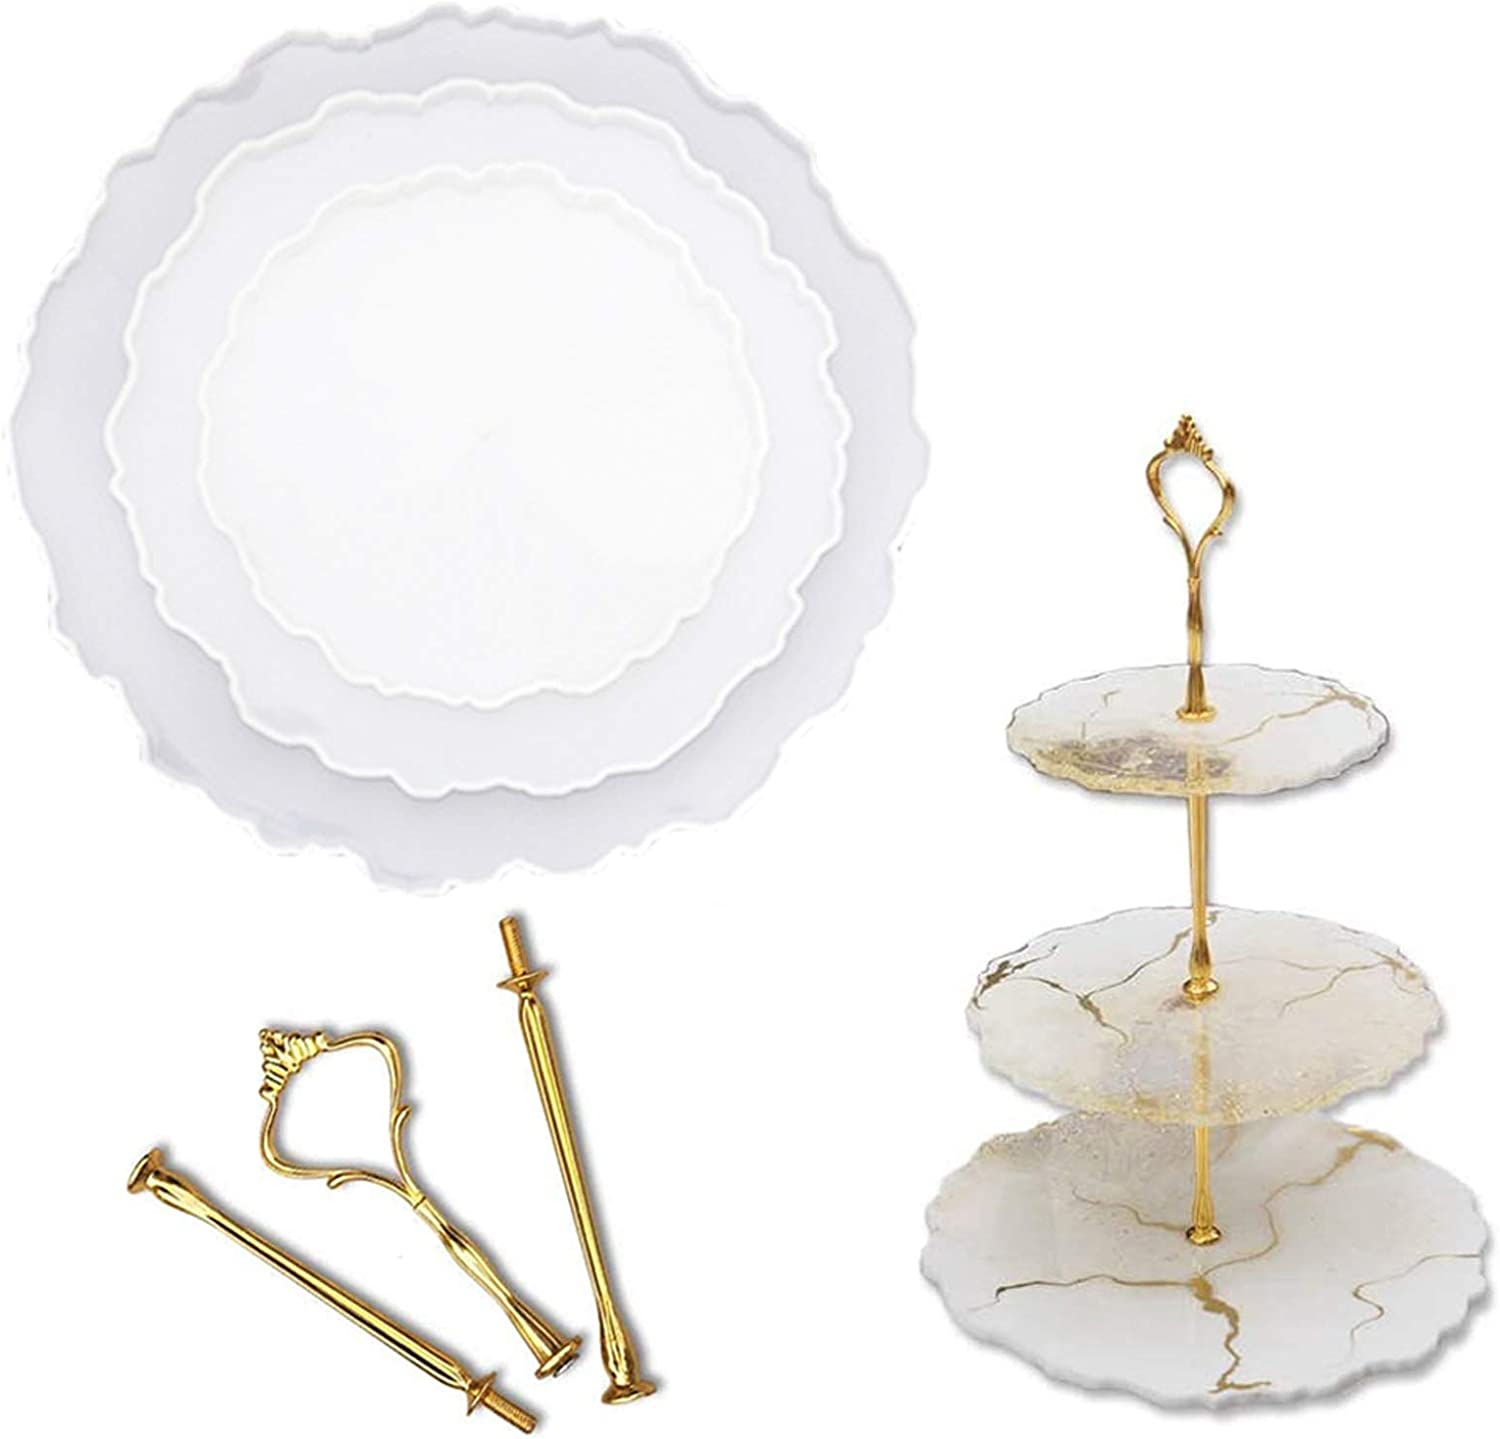 A 3 Tier Cake Stand Silicone Resin Tray Molds,DIY Irregular Epoxy Resin Agate Casting Mold